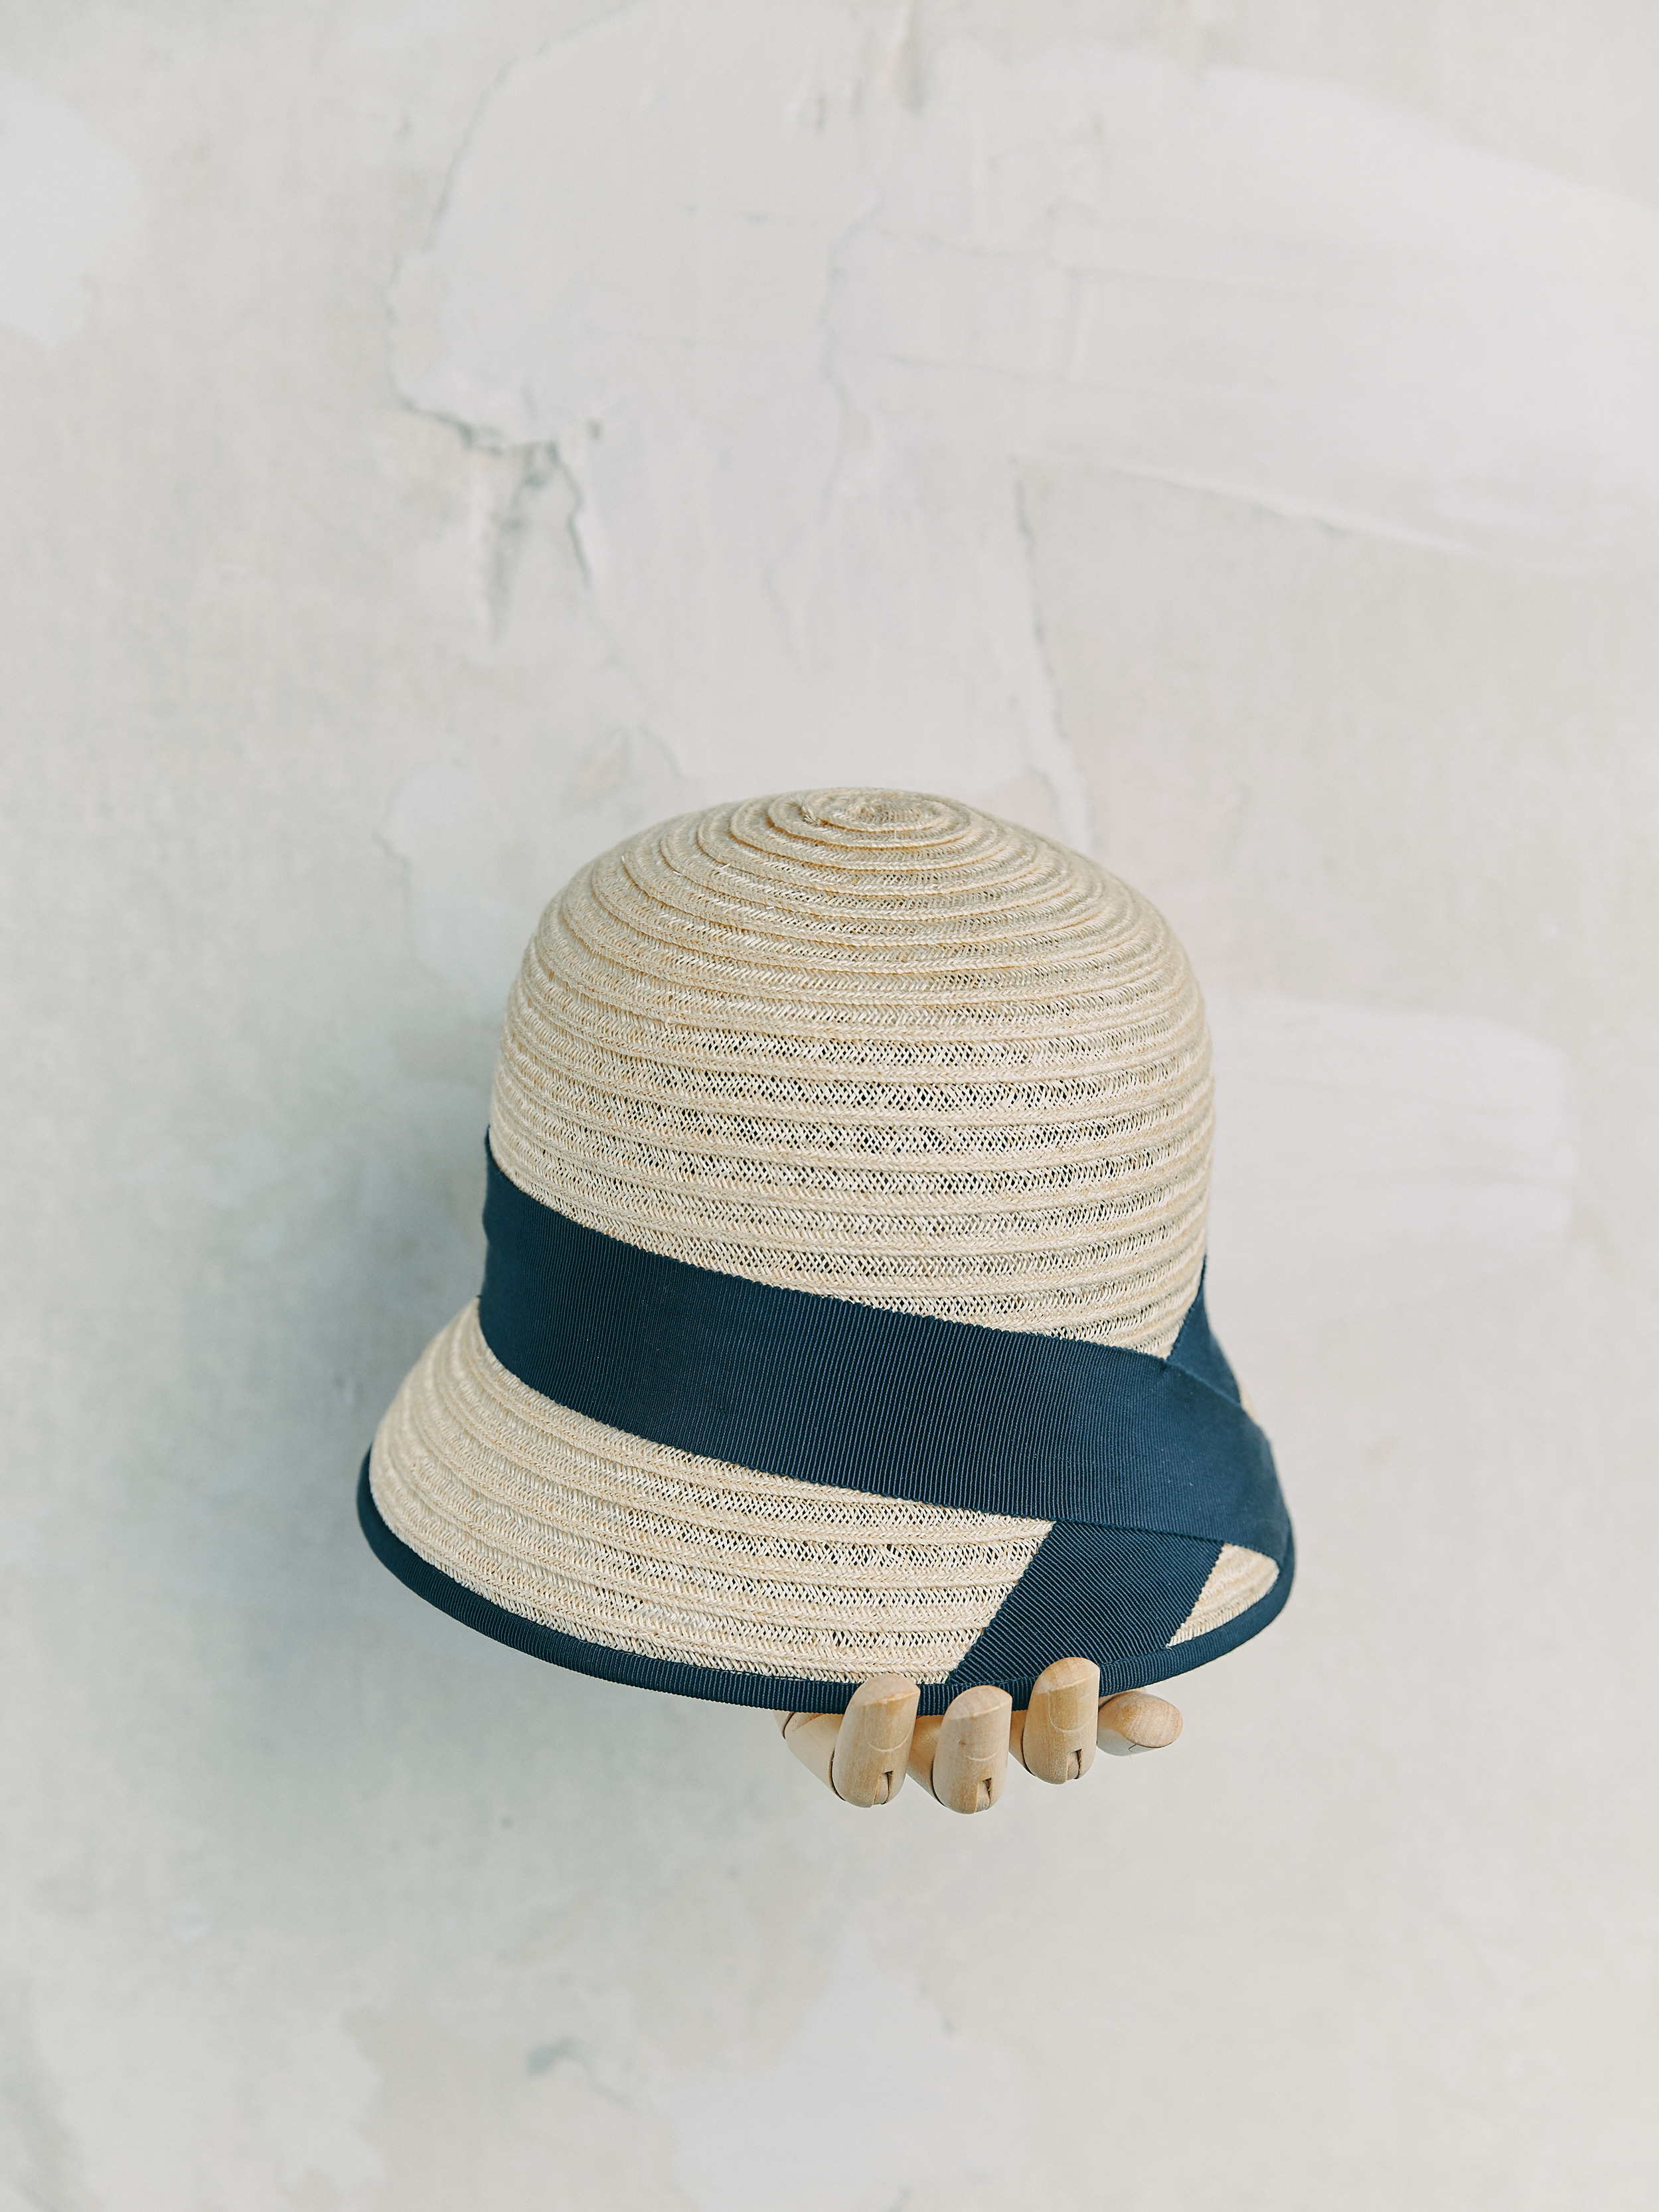 CHAPEAU CLOCHE - Naturelle bordé ruban Blue Marine